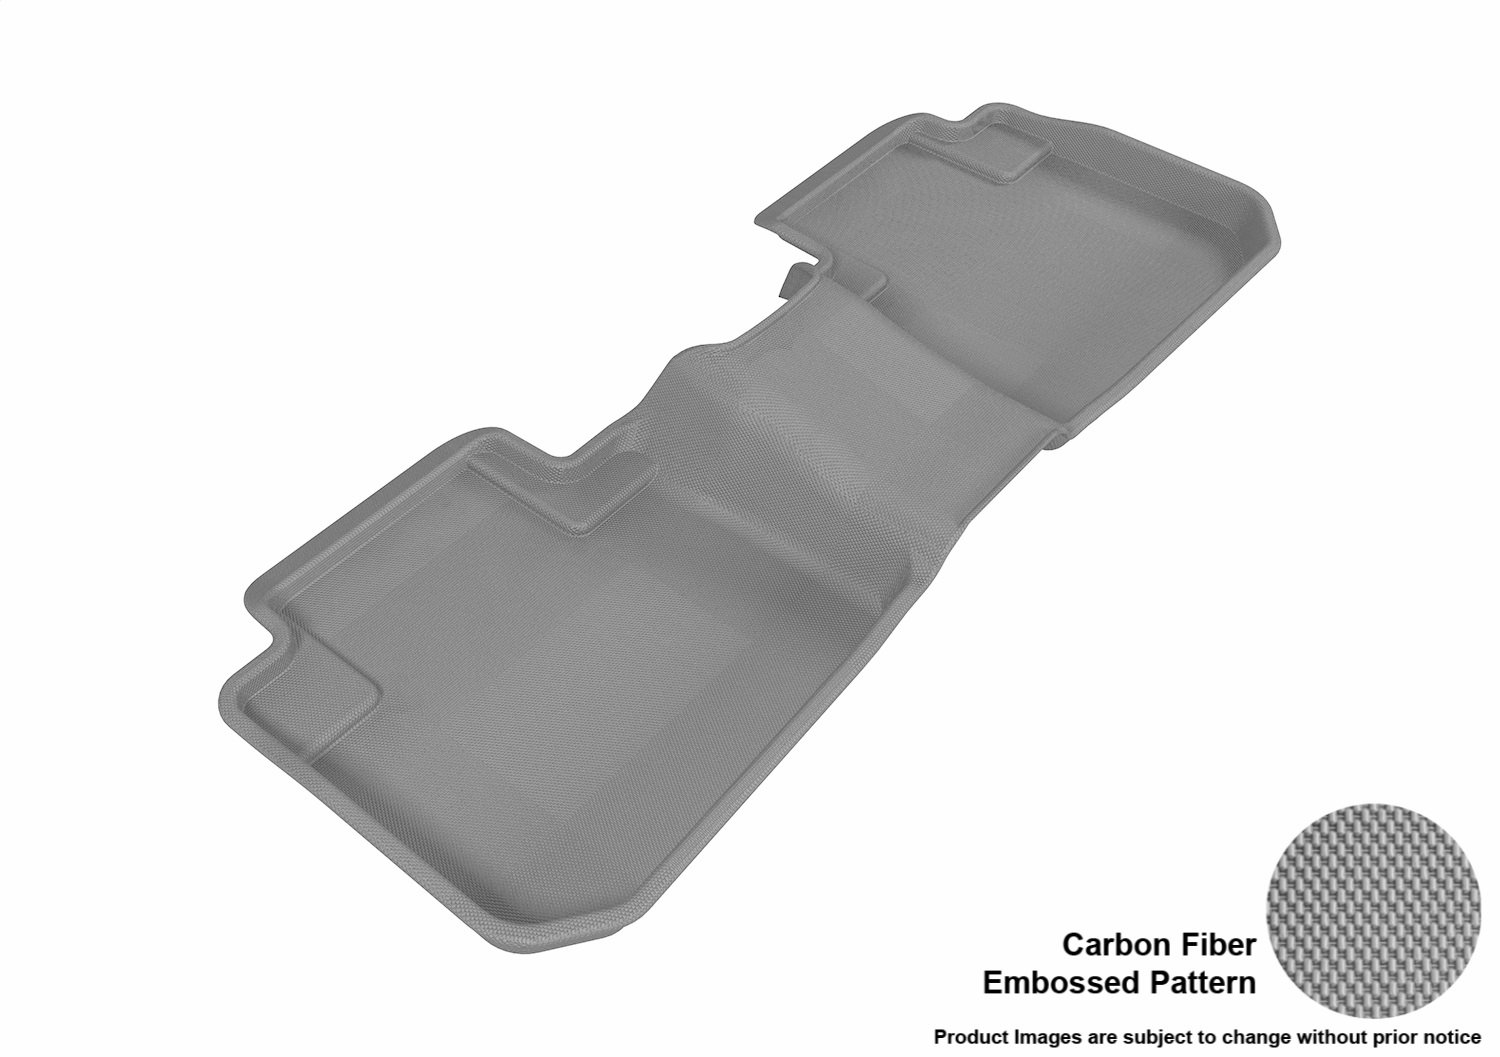 L1SB00921502 Kagu Rubber Tan 3D MAXpider Second Row Custom Fit All-Weather Floor Mat for Select Subaru Forester Models